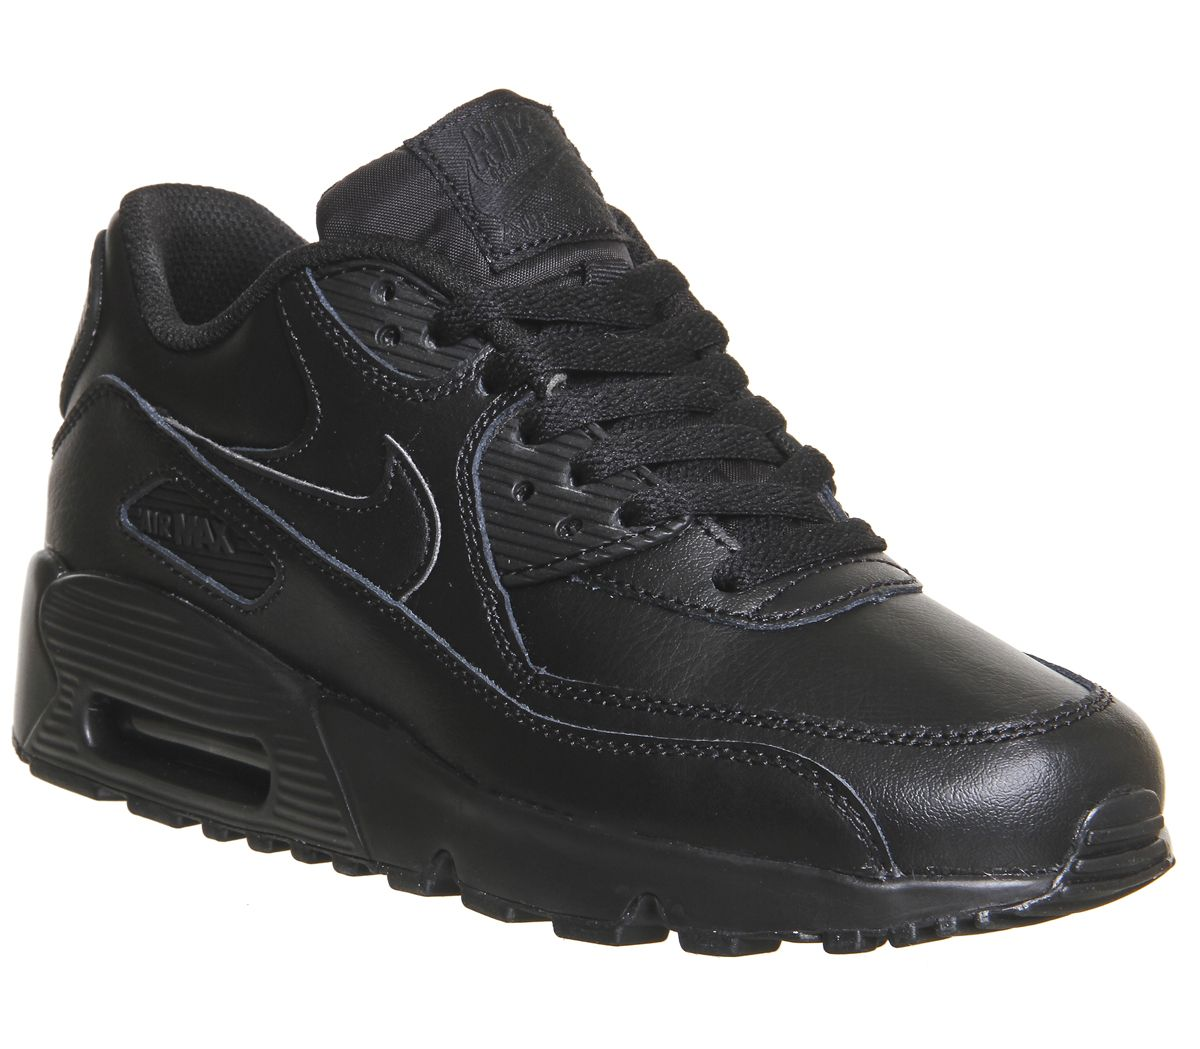 super popular 3ba63 89866 Nike Air Max 90 Gs Black - Hers trainers